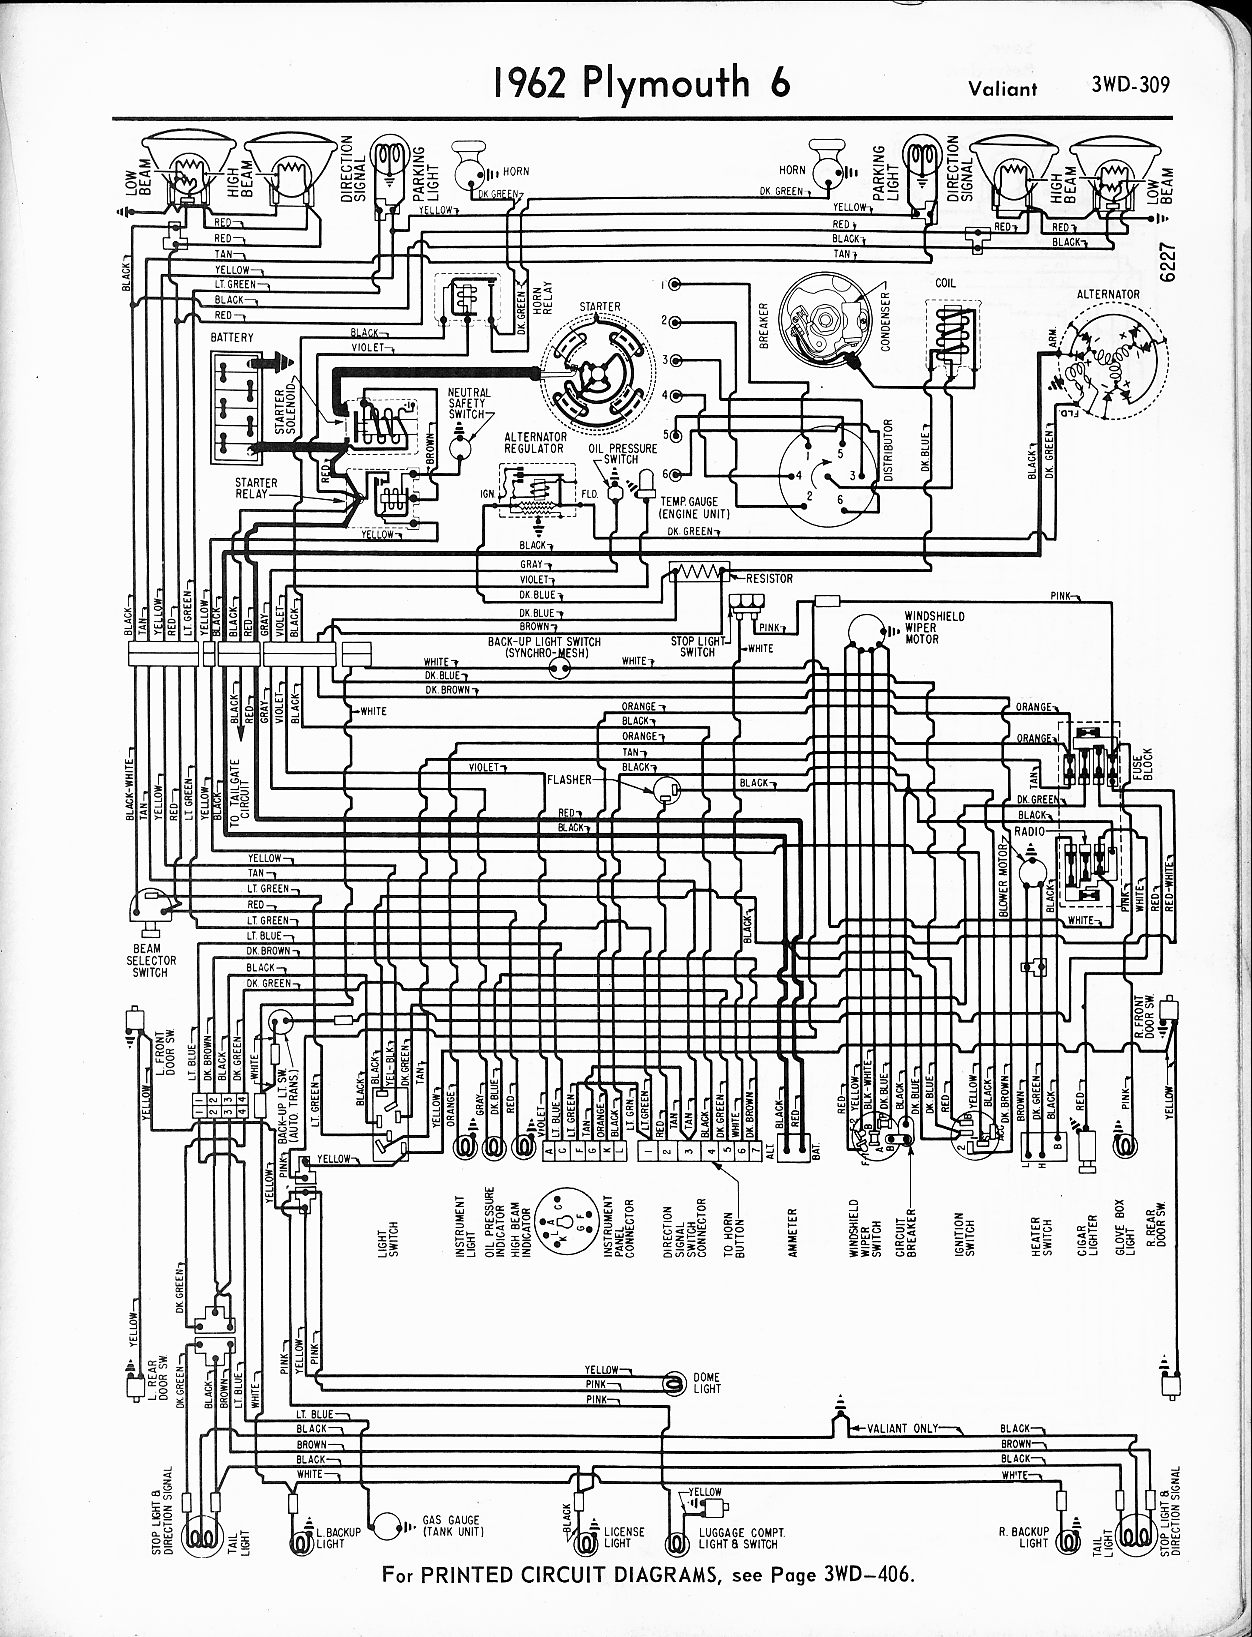 1973 Plymouth Duster Air Conditioning Diagram All Kind Of Wiring Barracuda 74 Cuda Get Free Image About 1971 1975